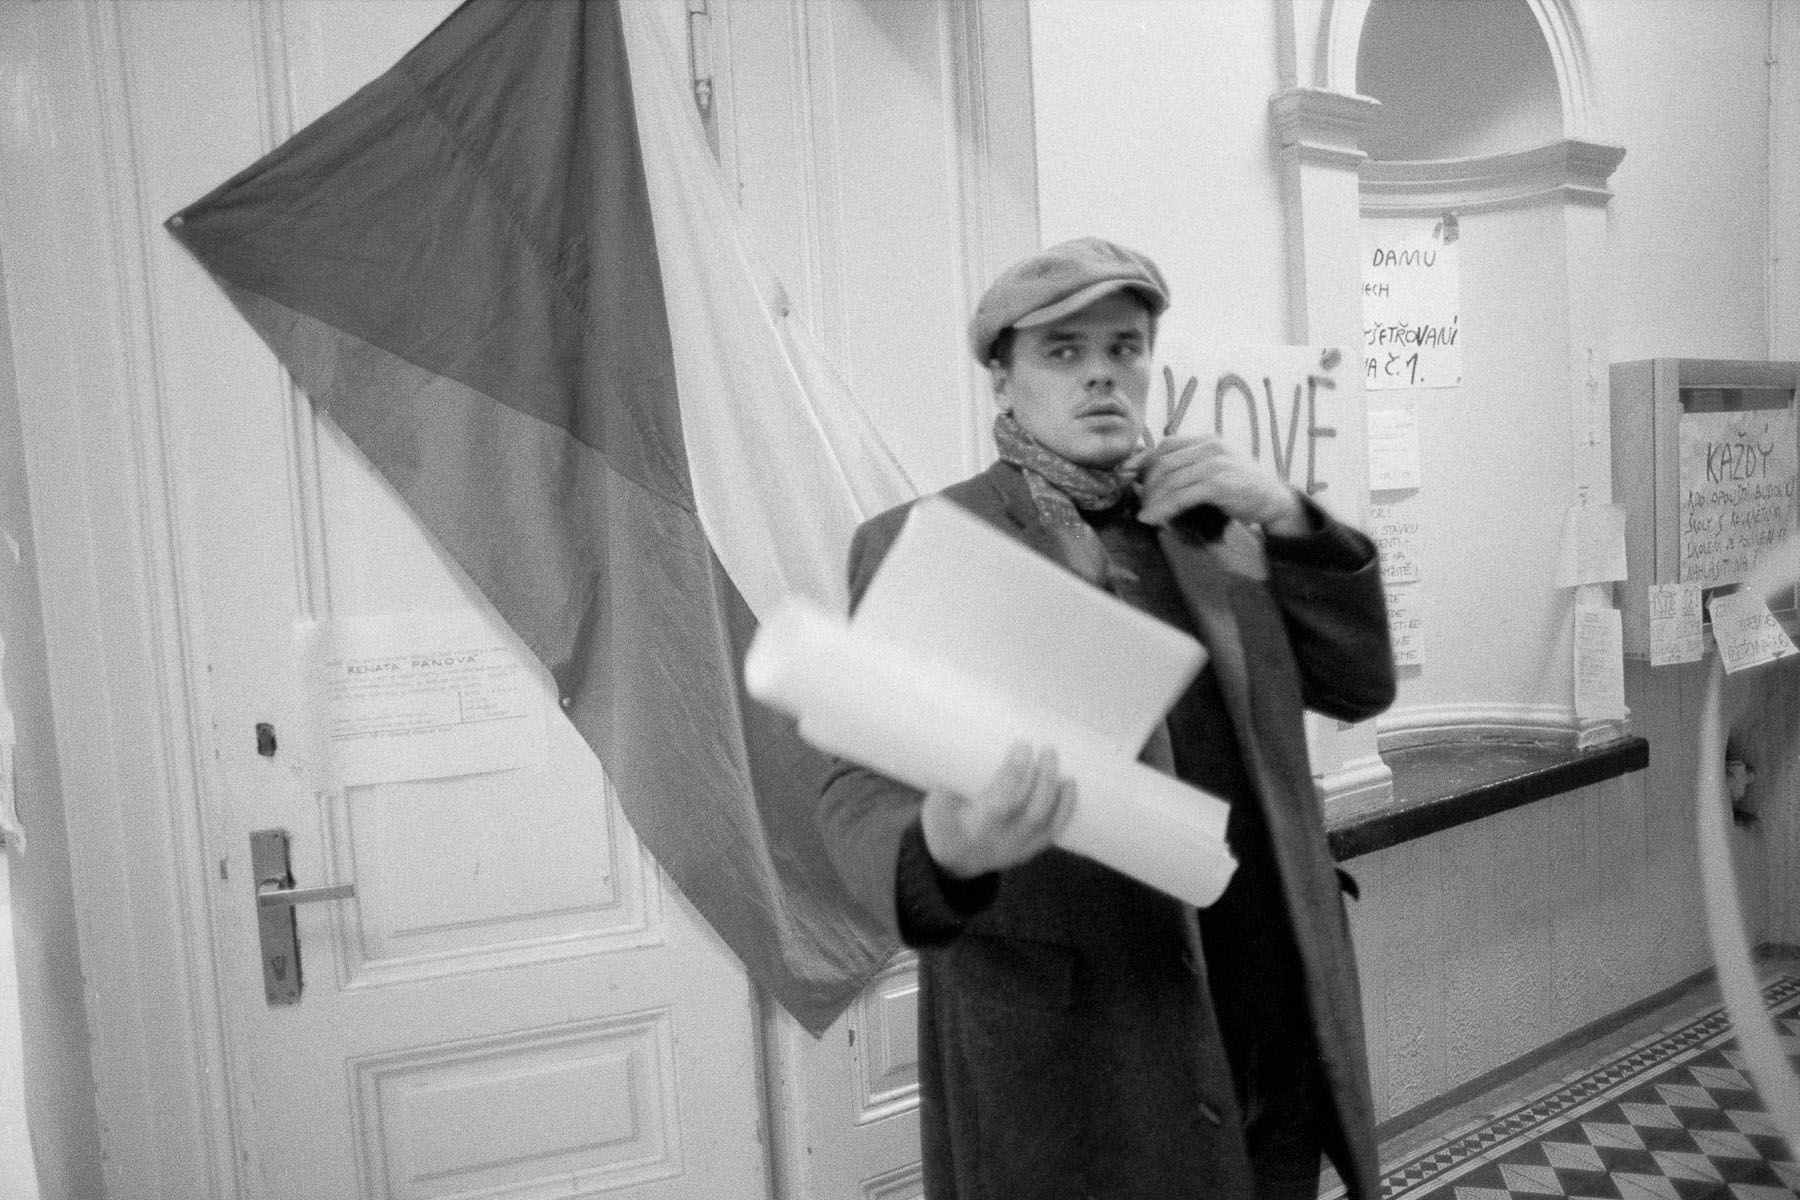 Preparation for a demonstration at the university in November 1989